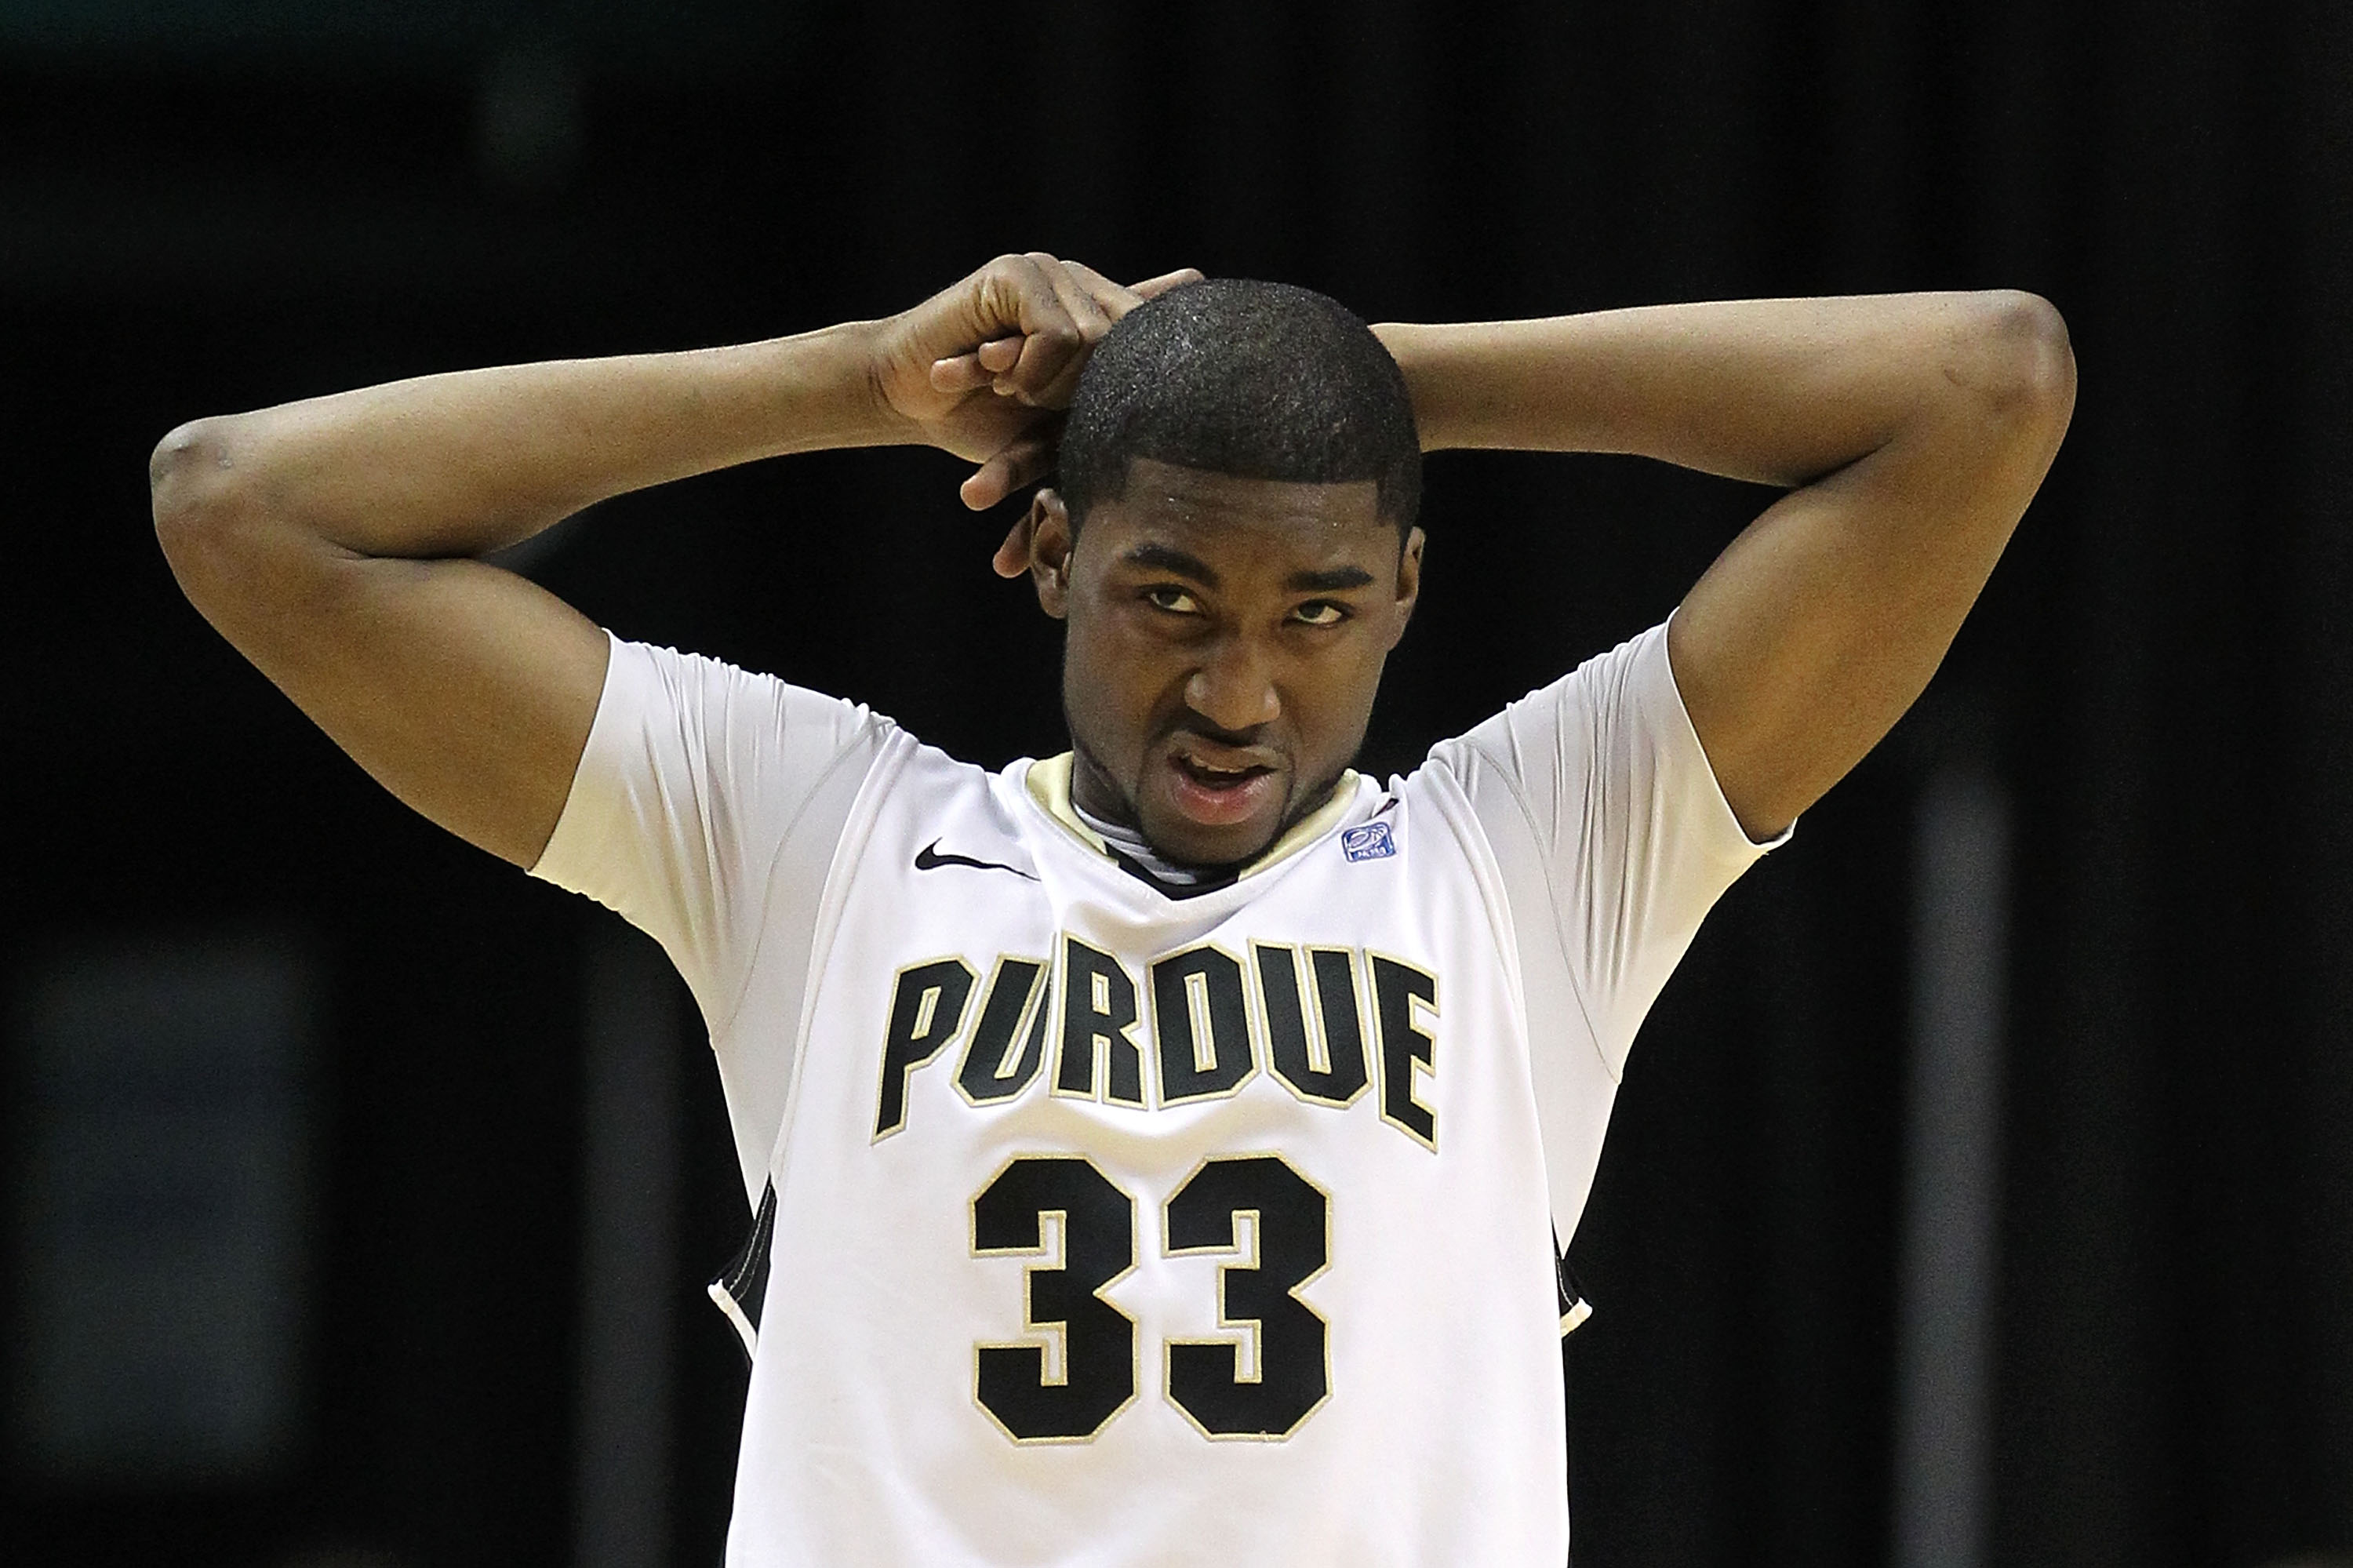 INDIANAPOLIS, IN - MARCH 11:  E'Twaun Moore #33 of the Purdue Boilermakers looks on dejected against the Michigan State Spartans during the quarterfinals of the 2011 Big Ten Men's Basketball Tournament at Conseco Fieldhouse on March 11, 2011 in Indianapol